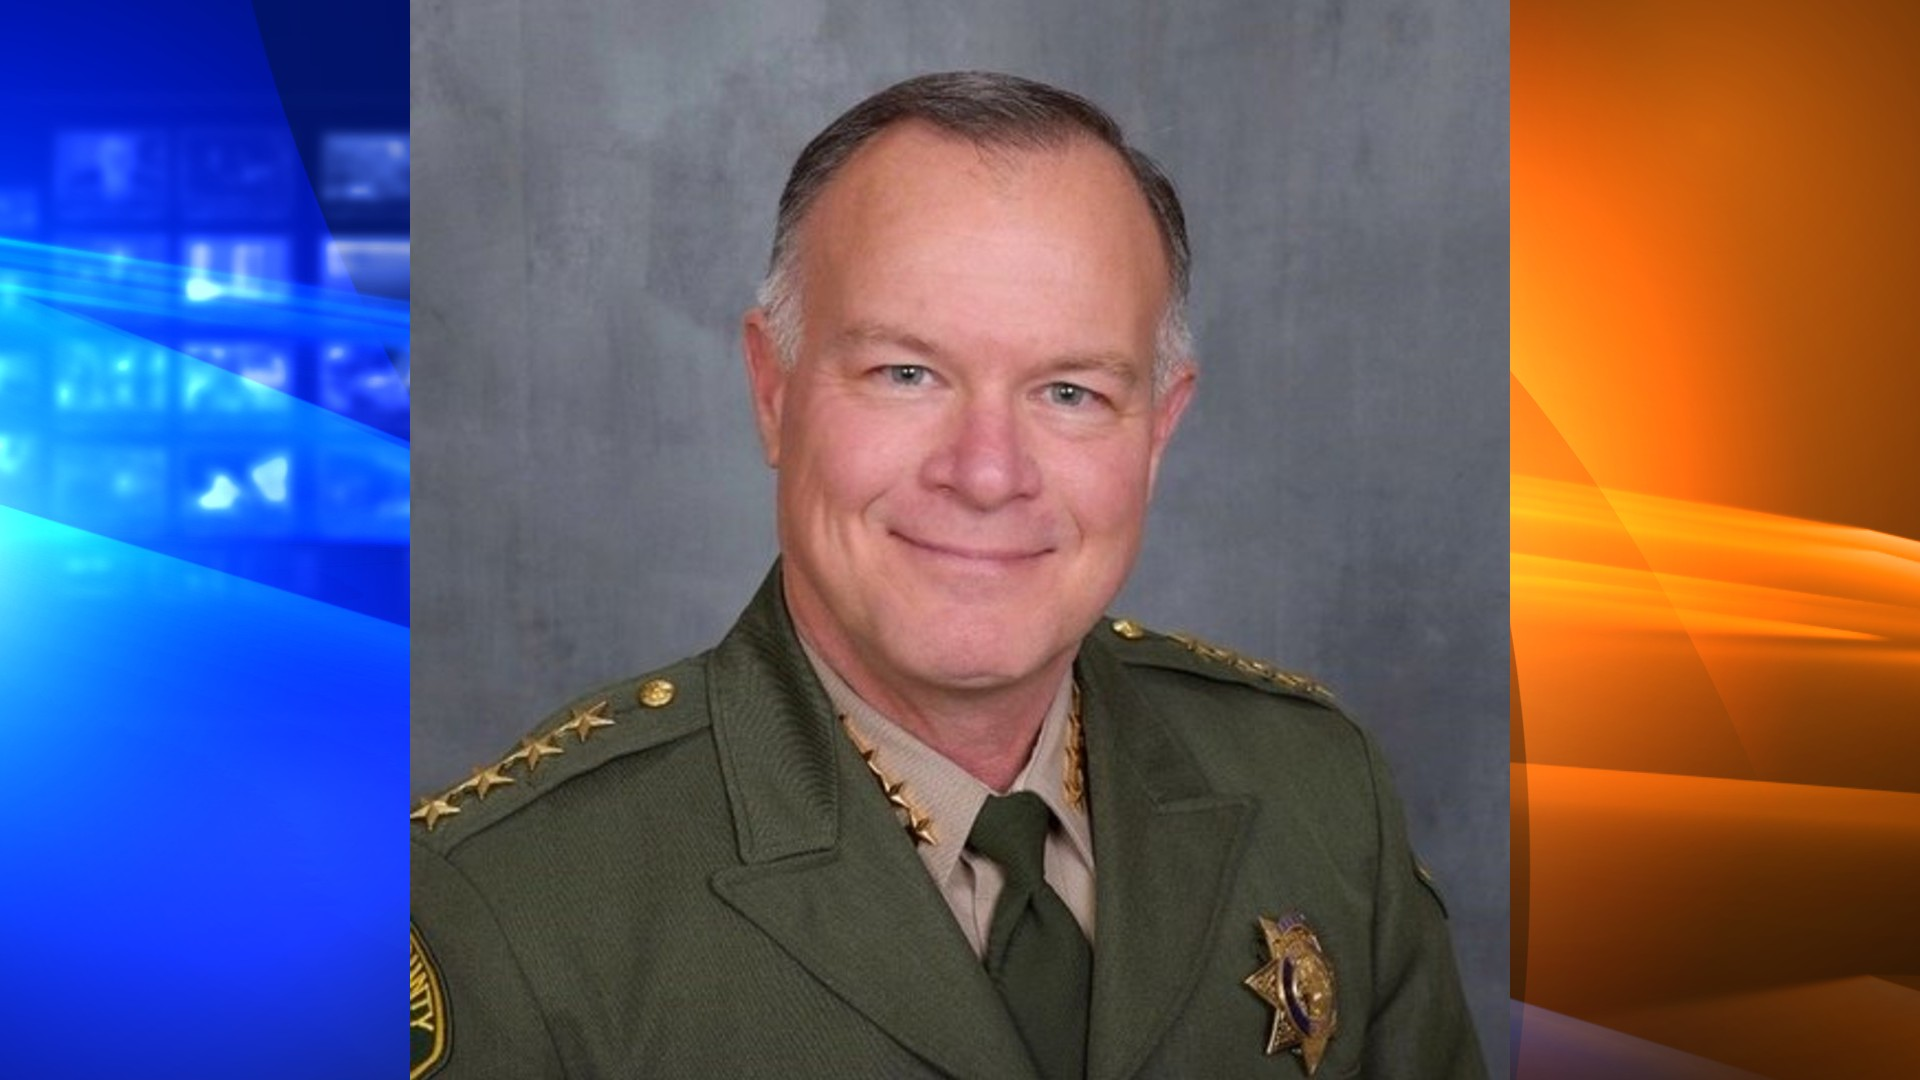 Sonoma Sheriff Mark Essick is seen in a photo distributed by his agency.